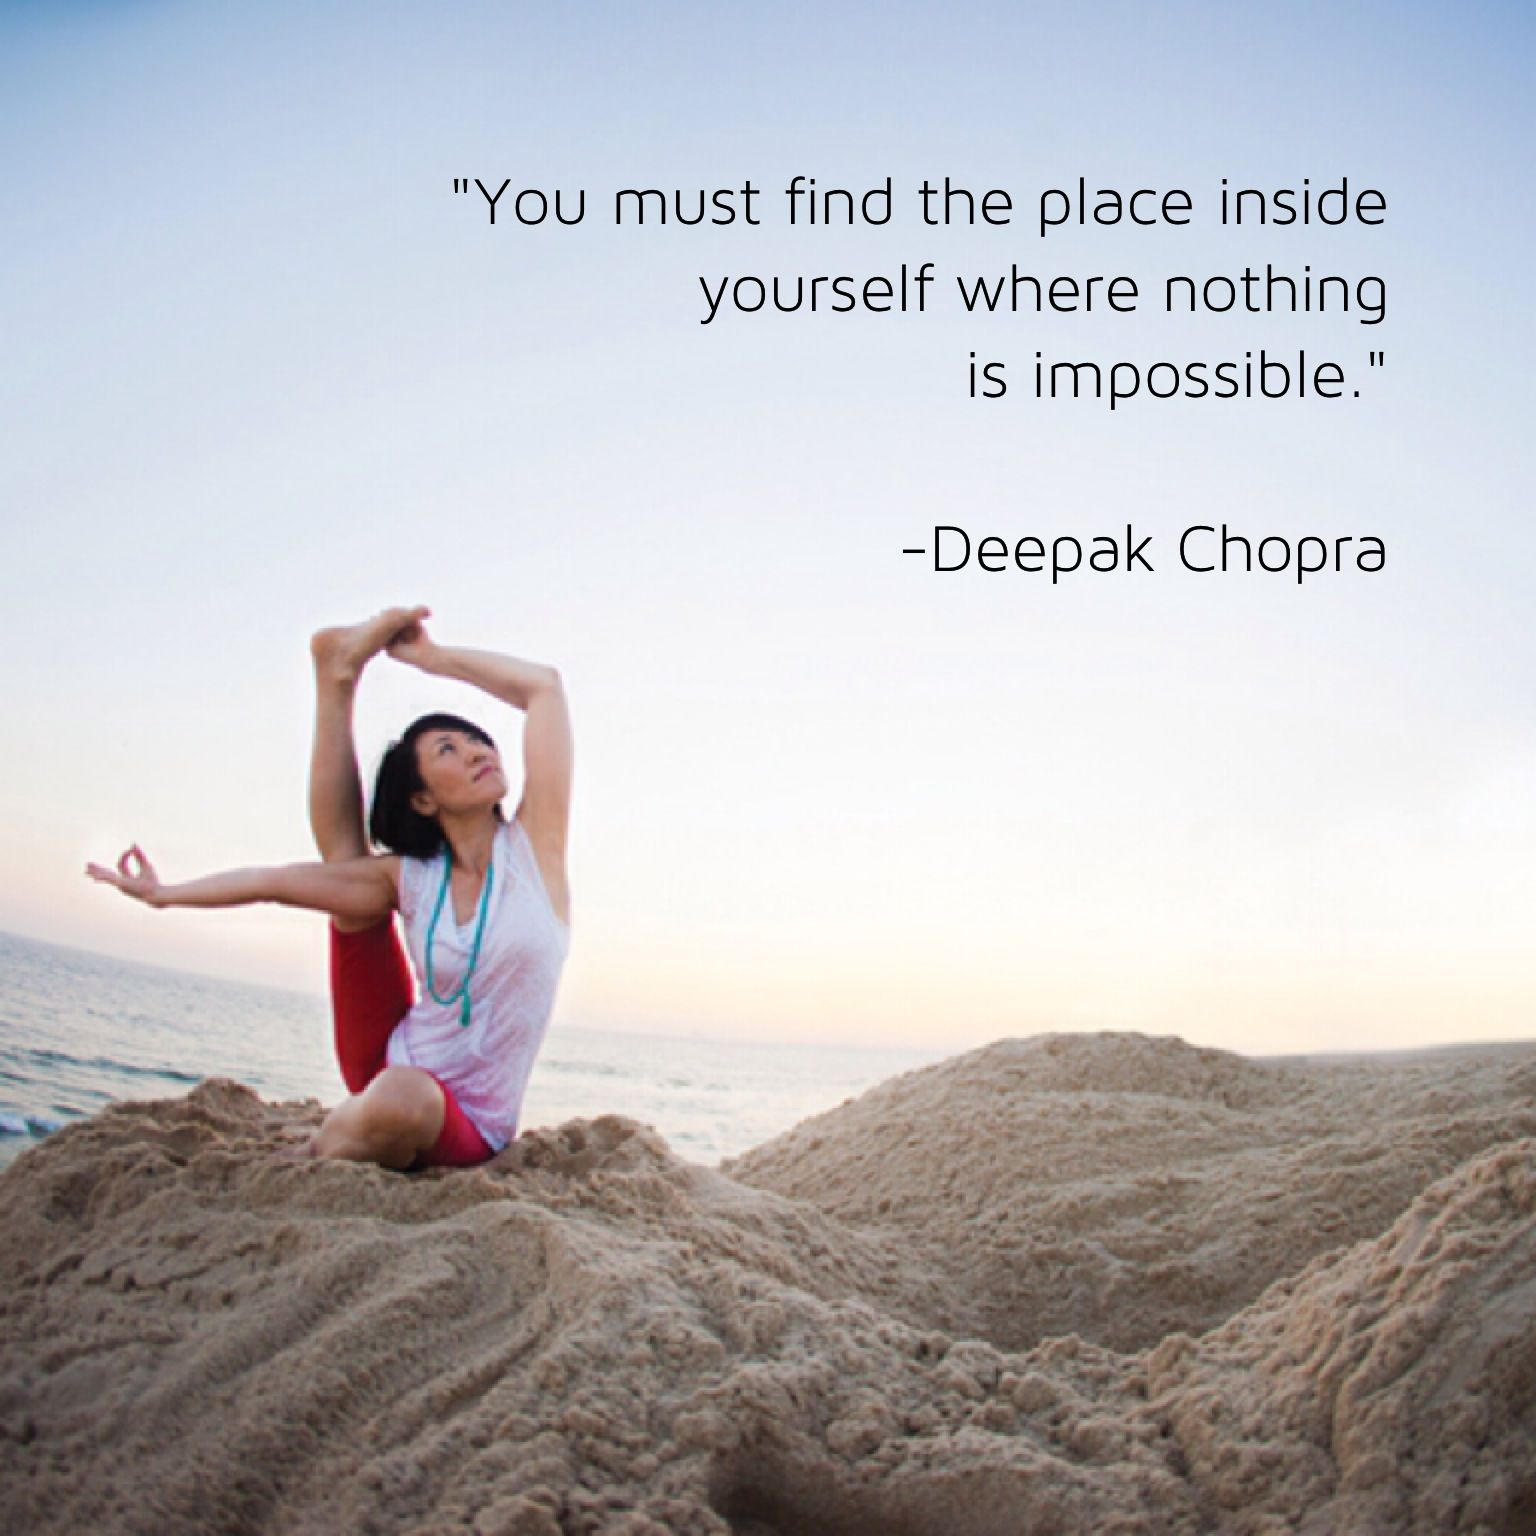 yoga poses and quotes - photo #13